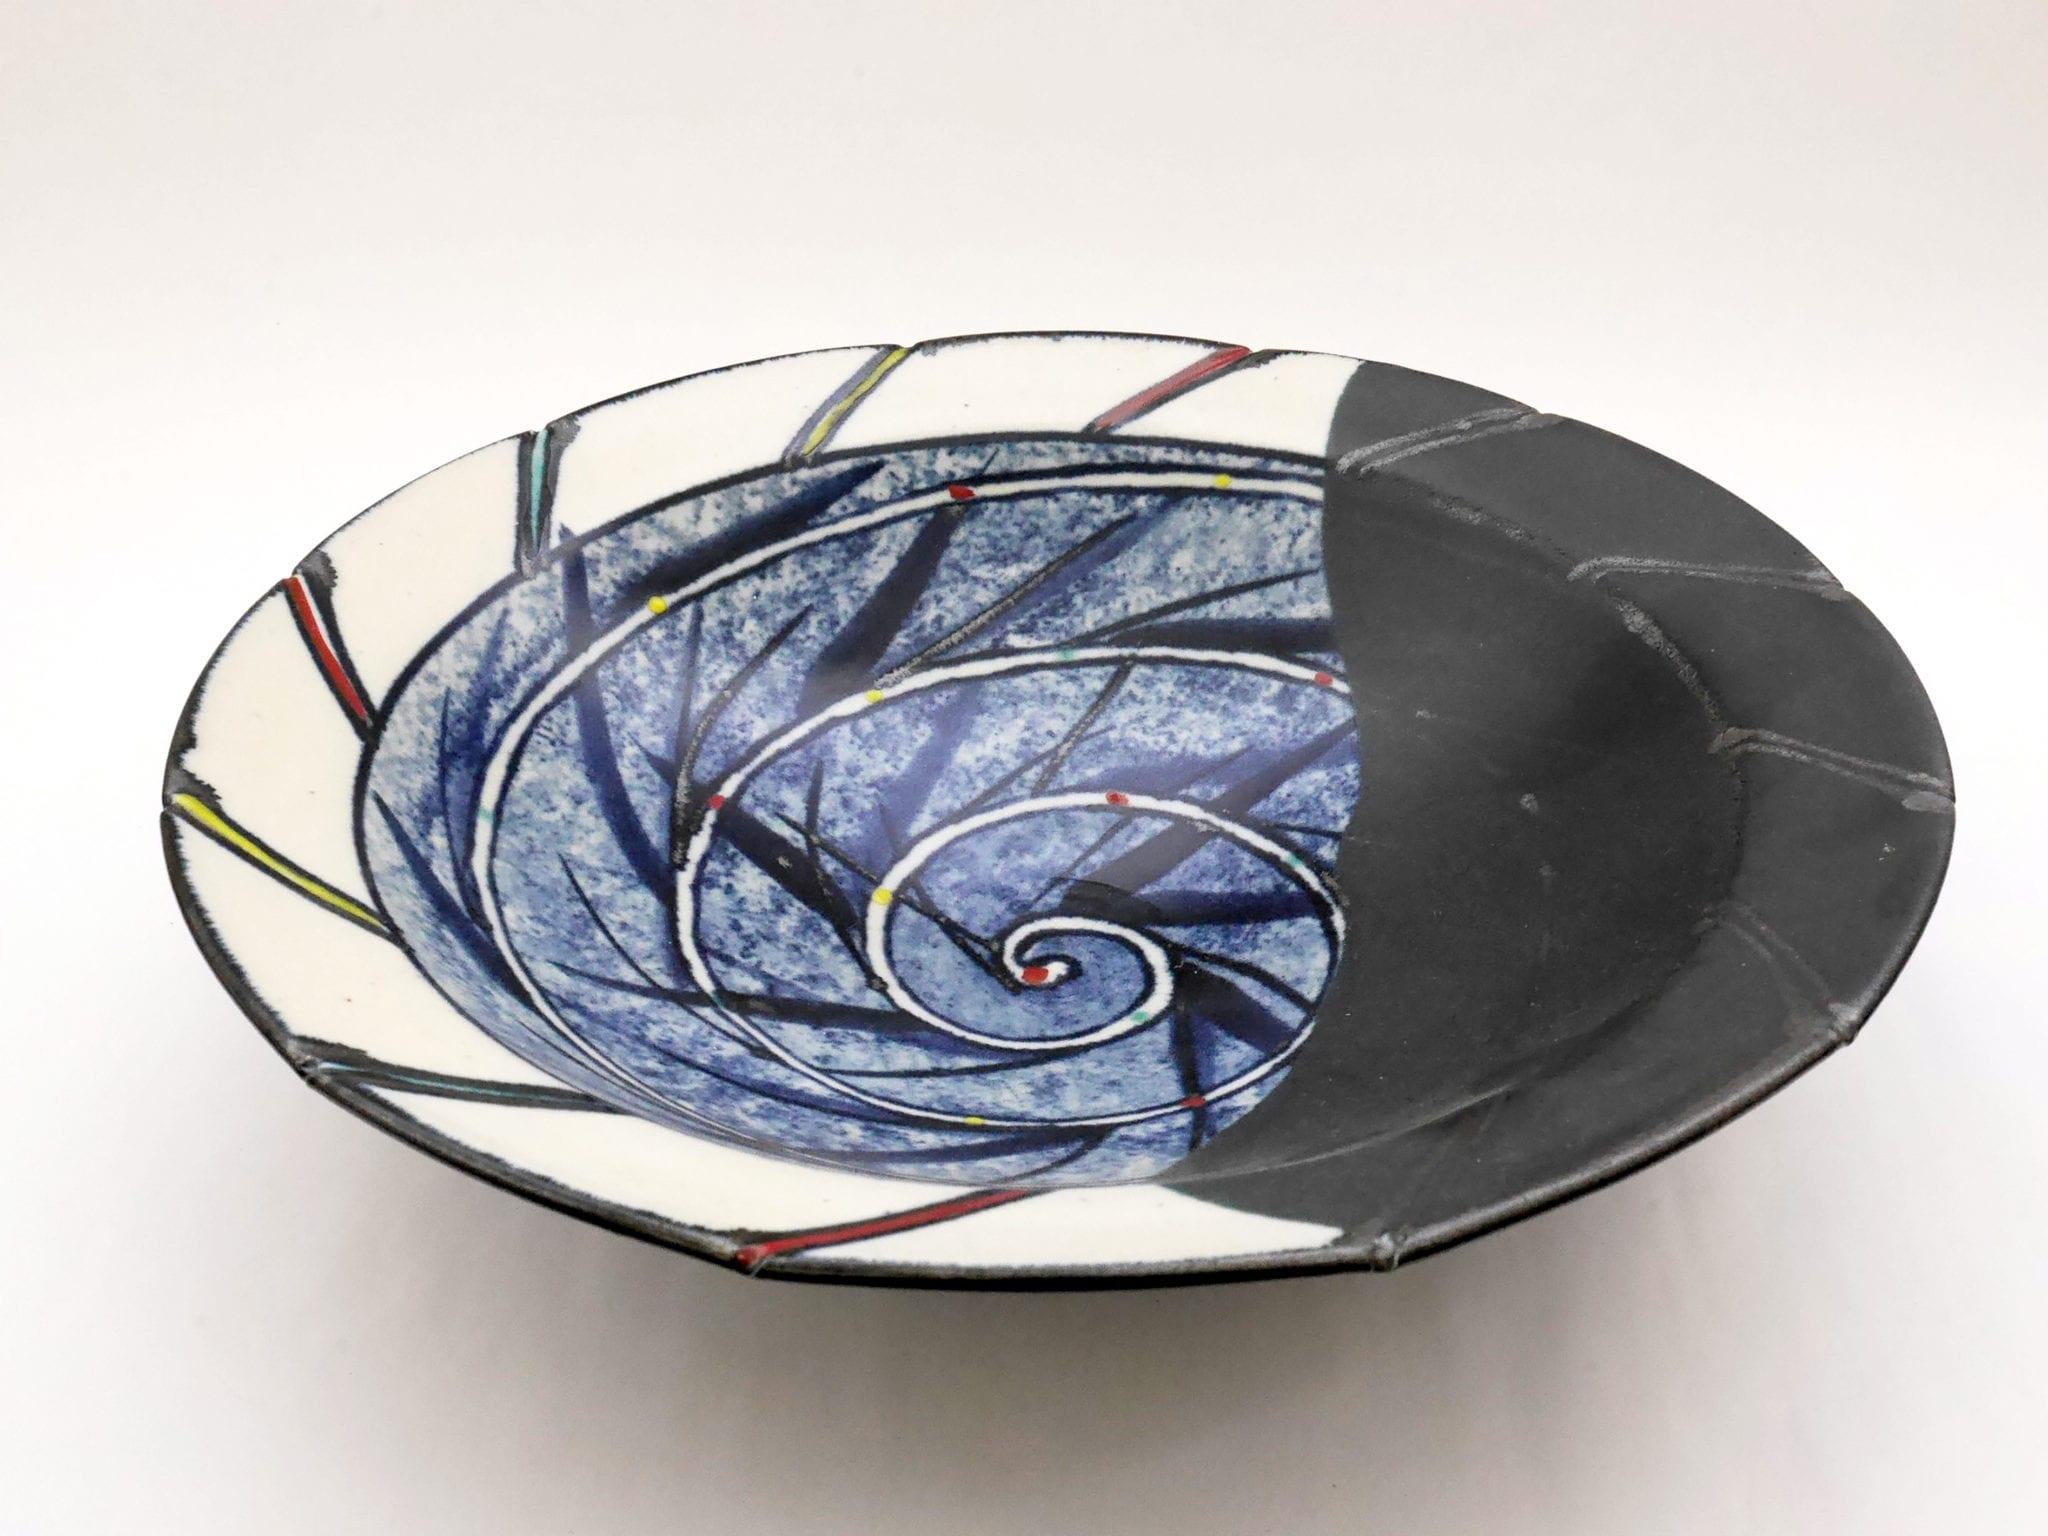 Kevin White, Untitled, 2001, porcelaneous stoneware, underglaze & onglaze enamels, 31 x 31 x 6.5 cm. Courtesy the artist.